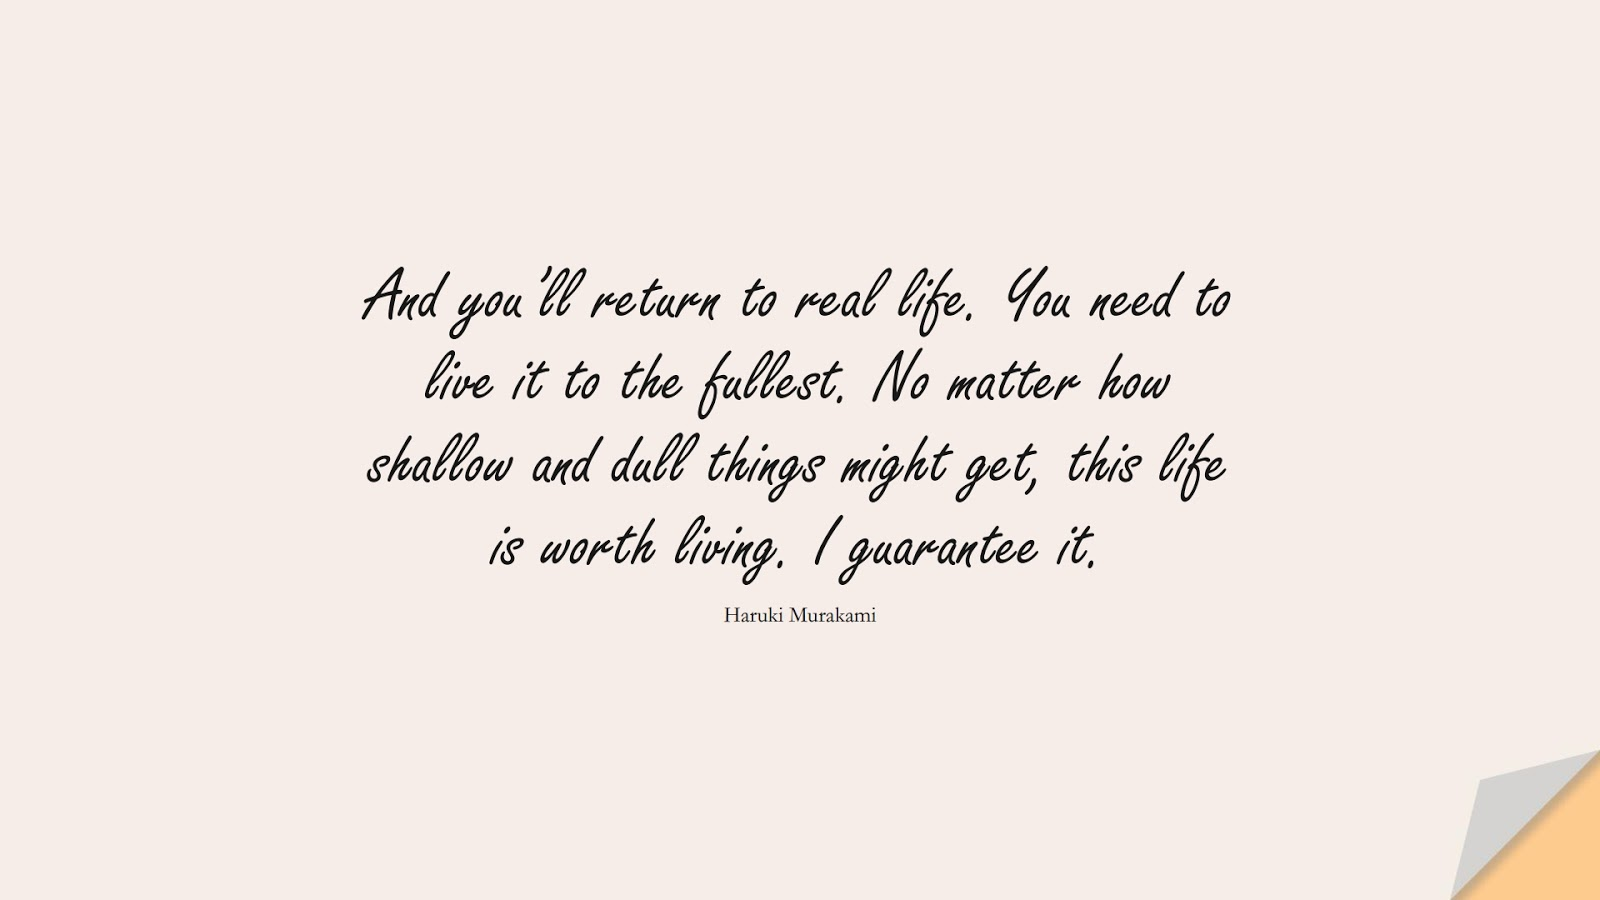 And you'll return to real life. You need to live it to the fullest. No matter how shallow and dull things might get, this life is worth living. I guarantee it. (Haruki Murakami);  #DepressionQuotes